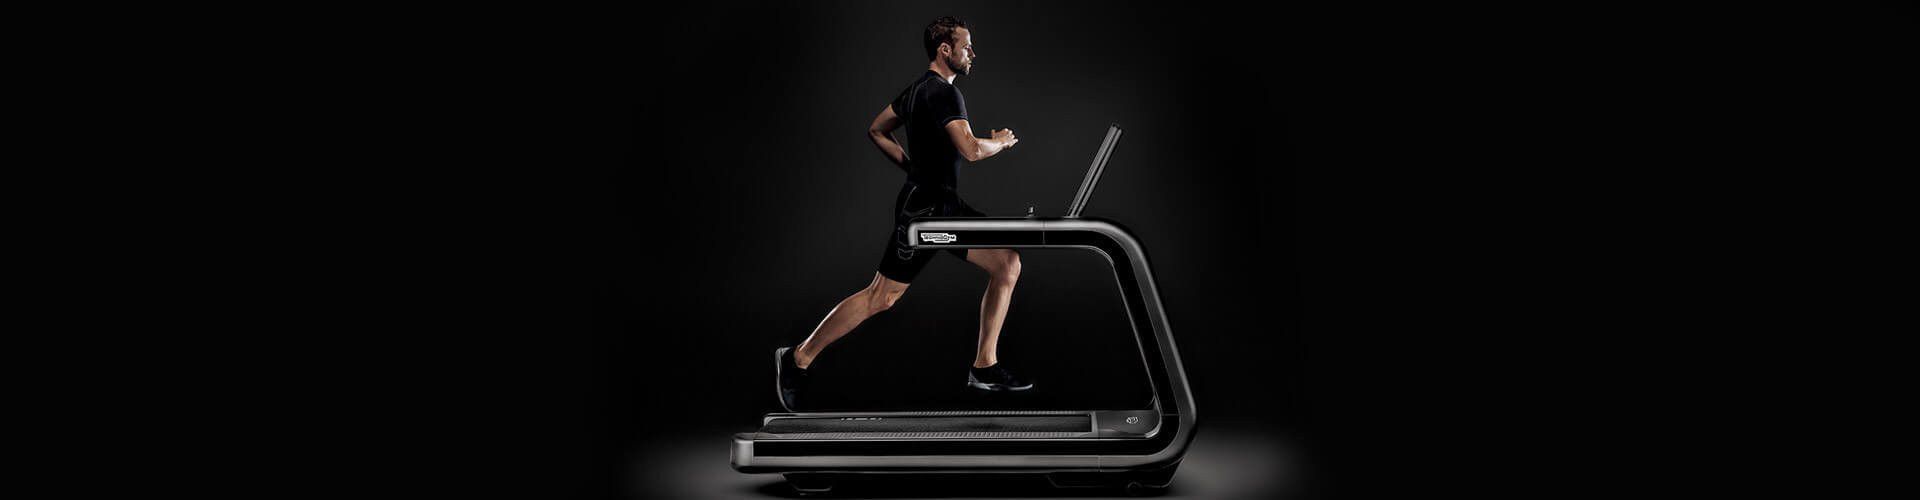 ARTIS Technogym Treadmill